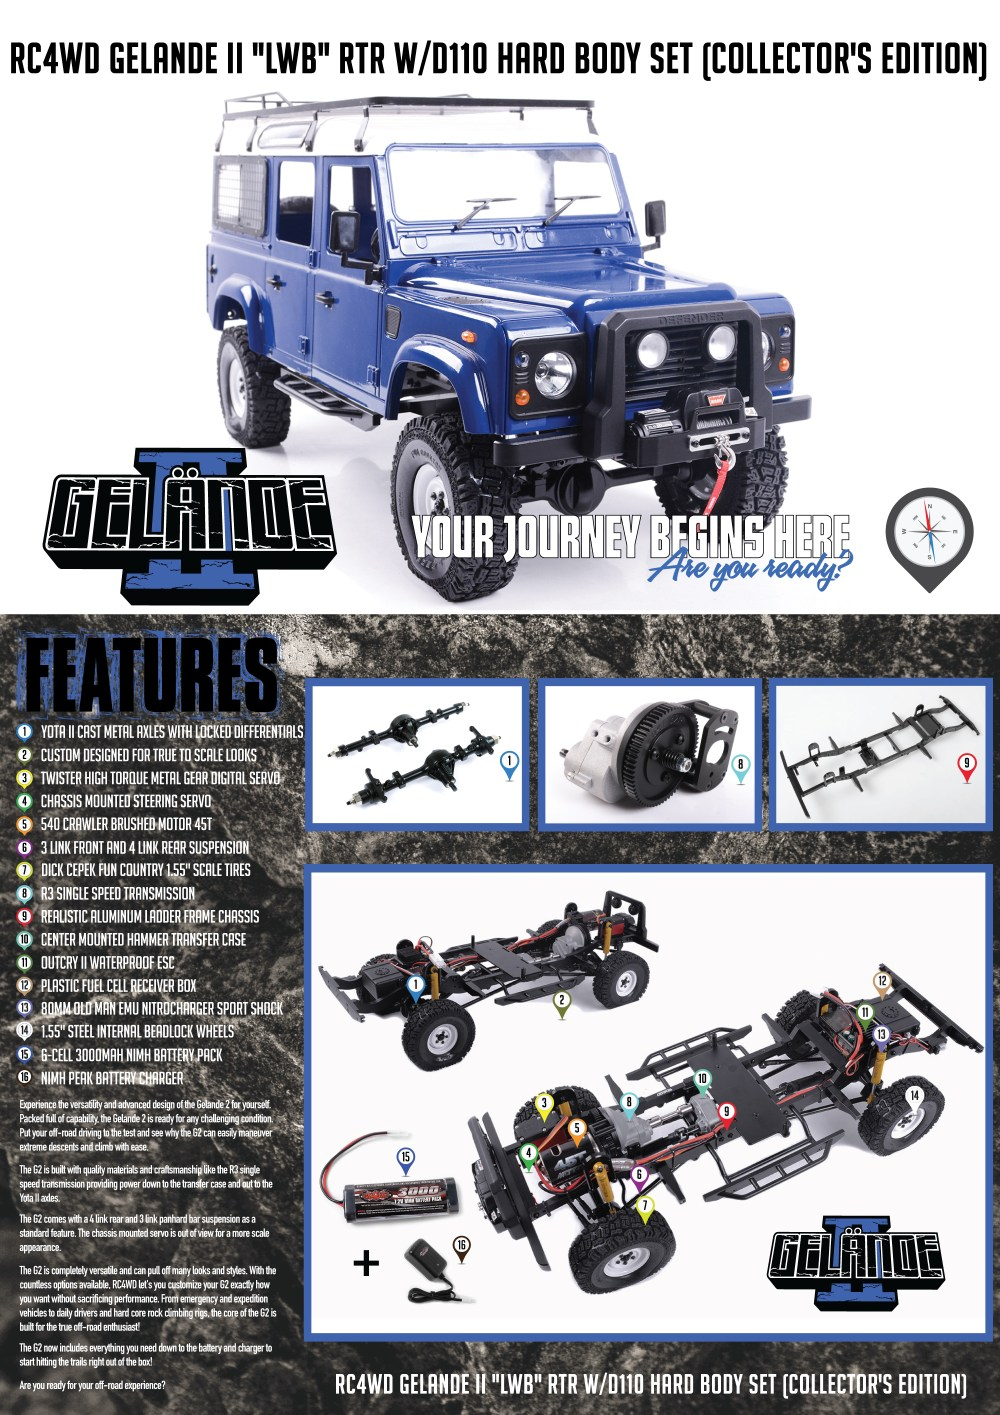 medium resolution of  w d110 hard body set collector s edition was put together with the scale driver in mind there s a limited quantity that will be released of these